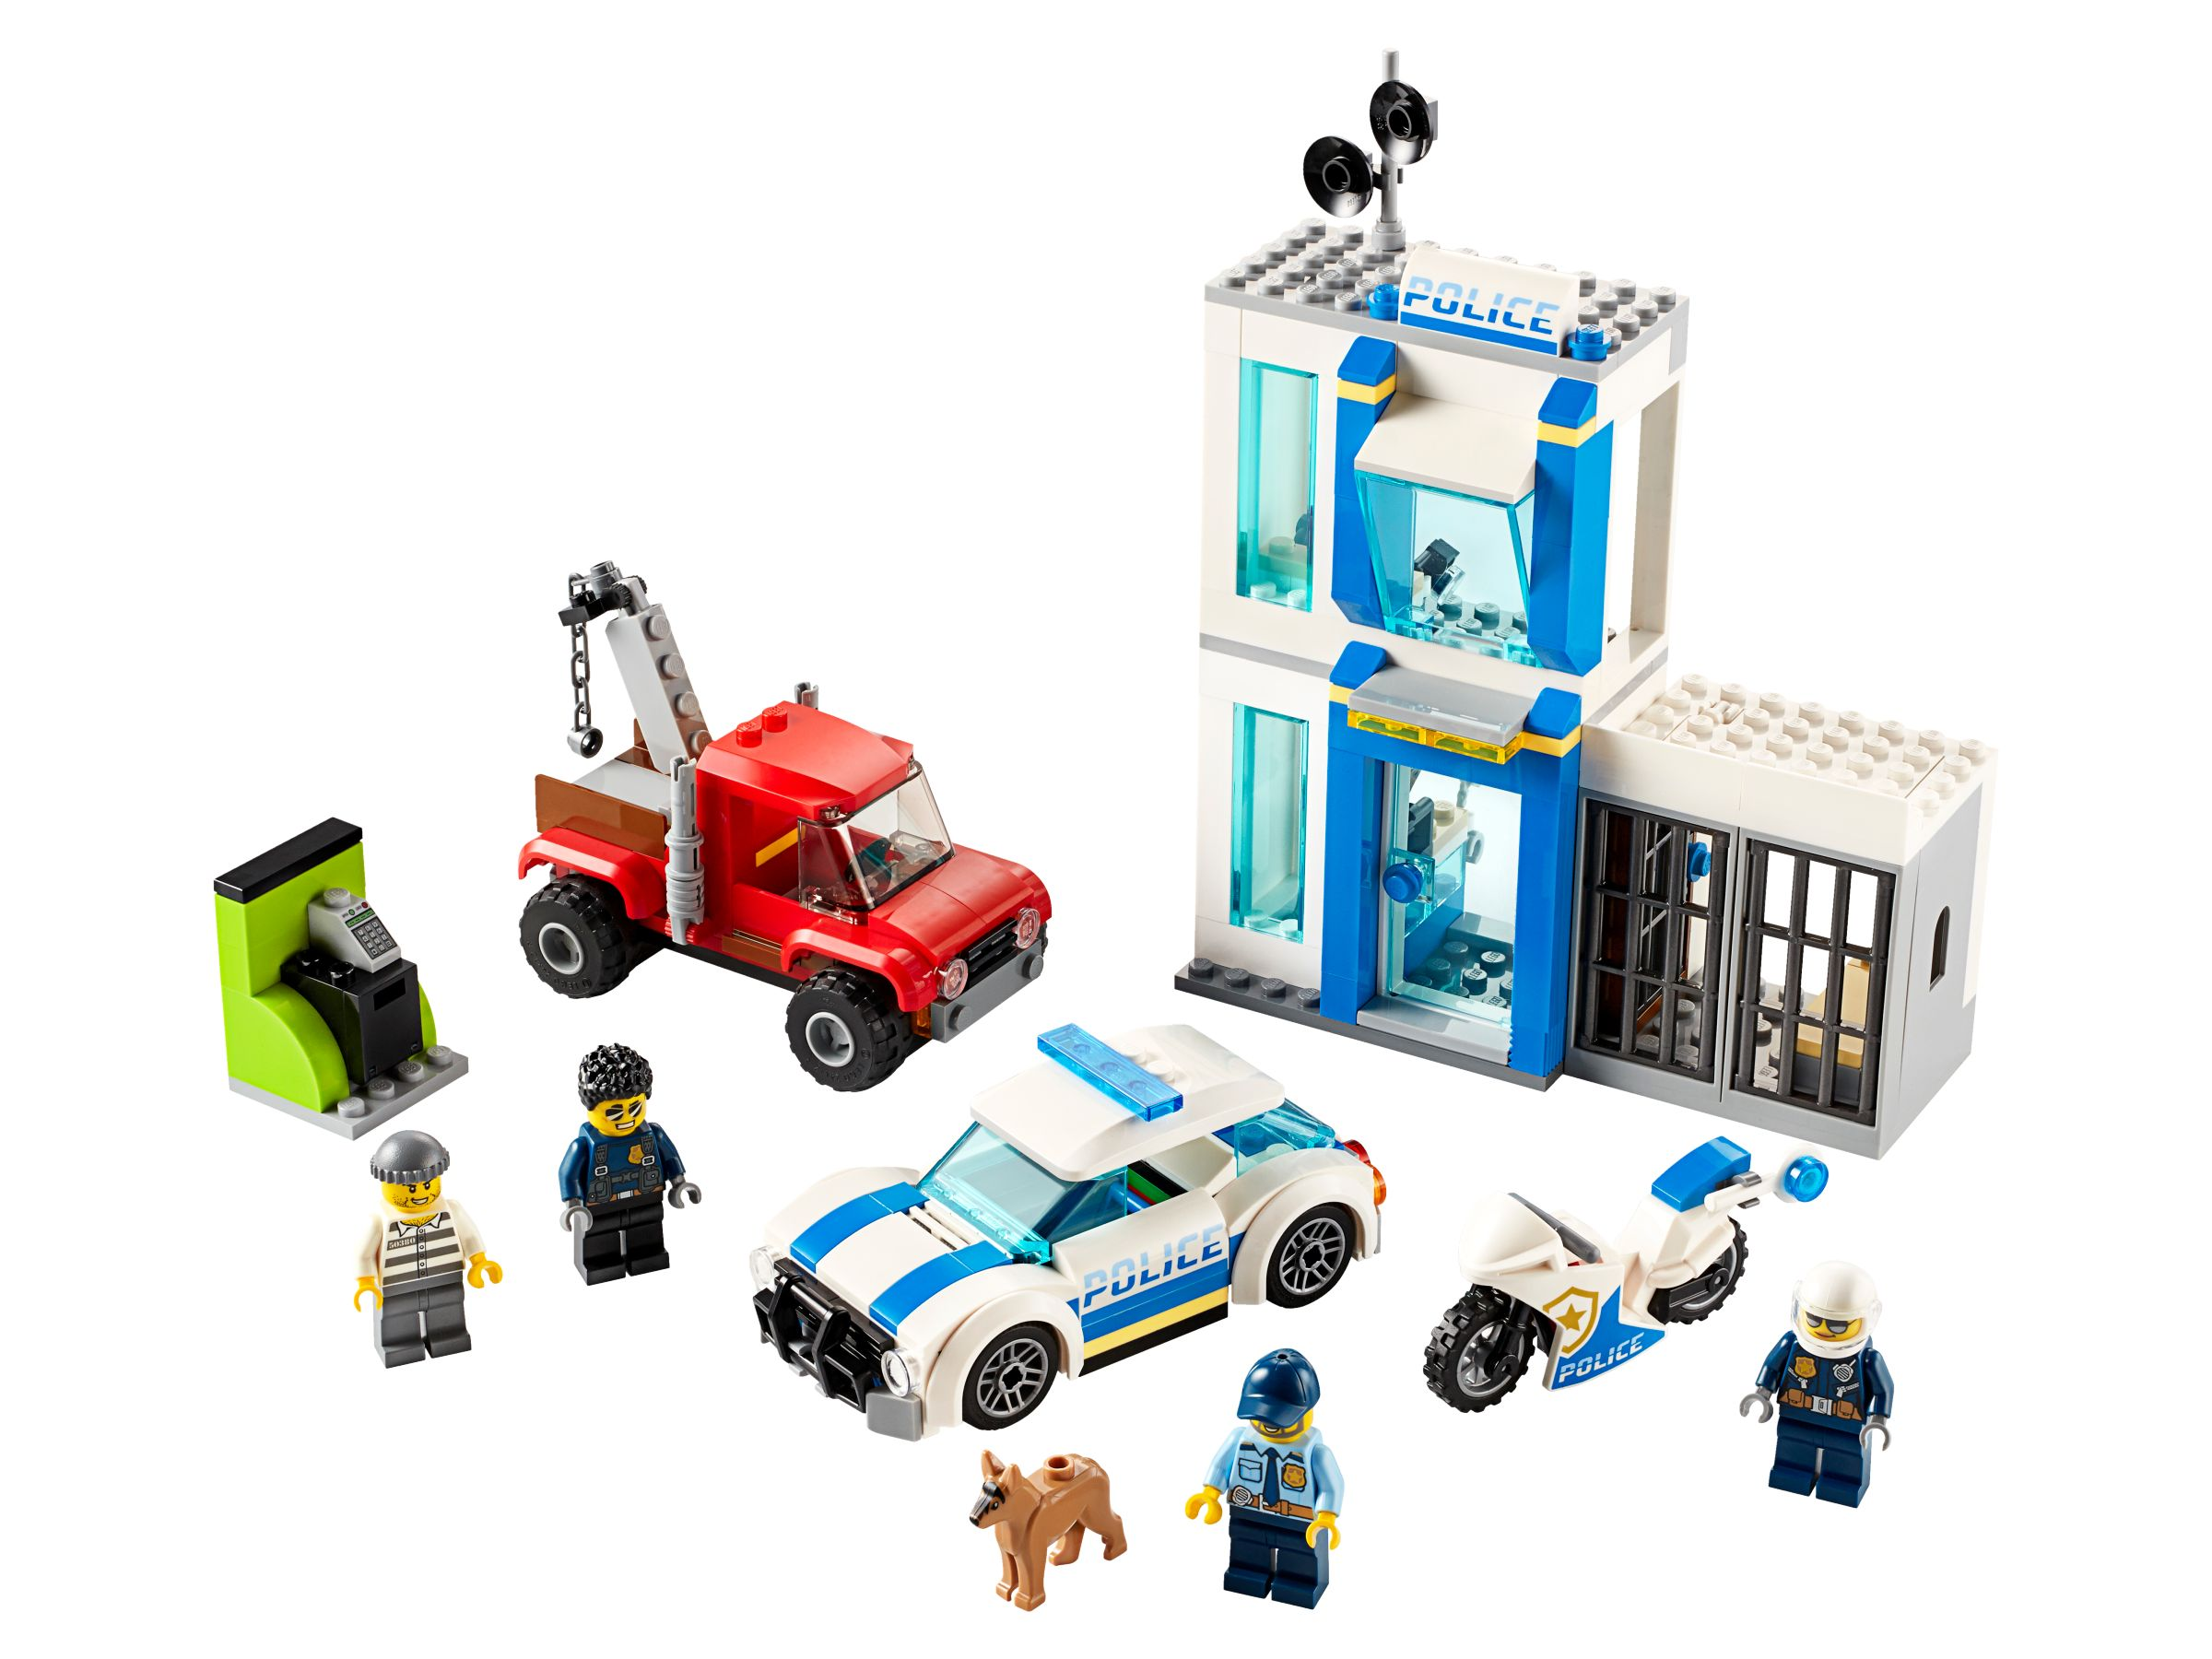 LEGO City 60270 Polizei-Steinebox